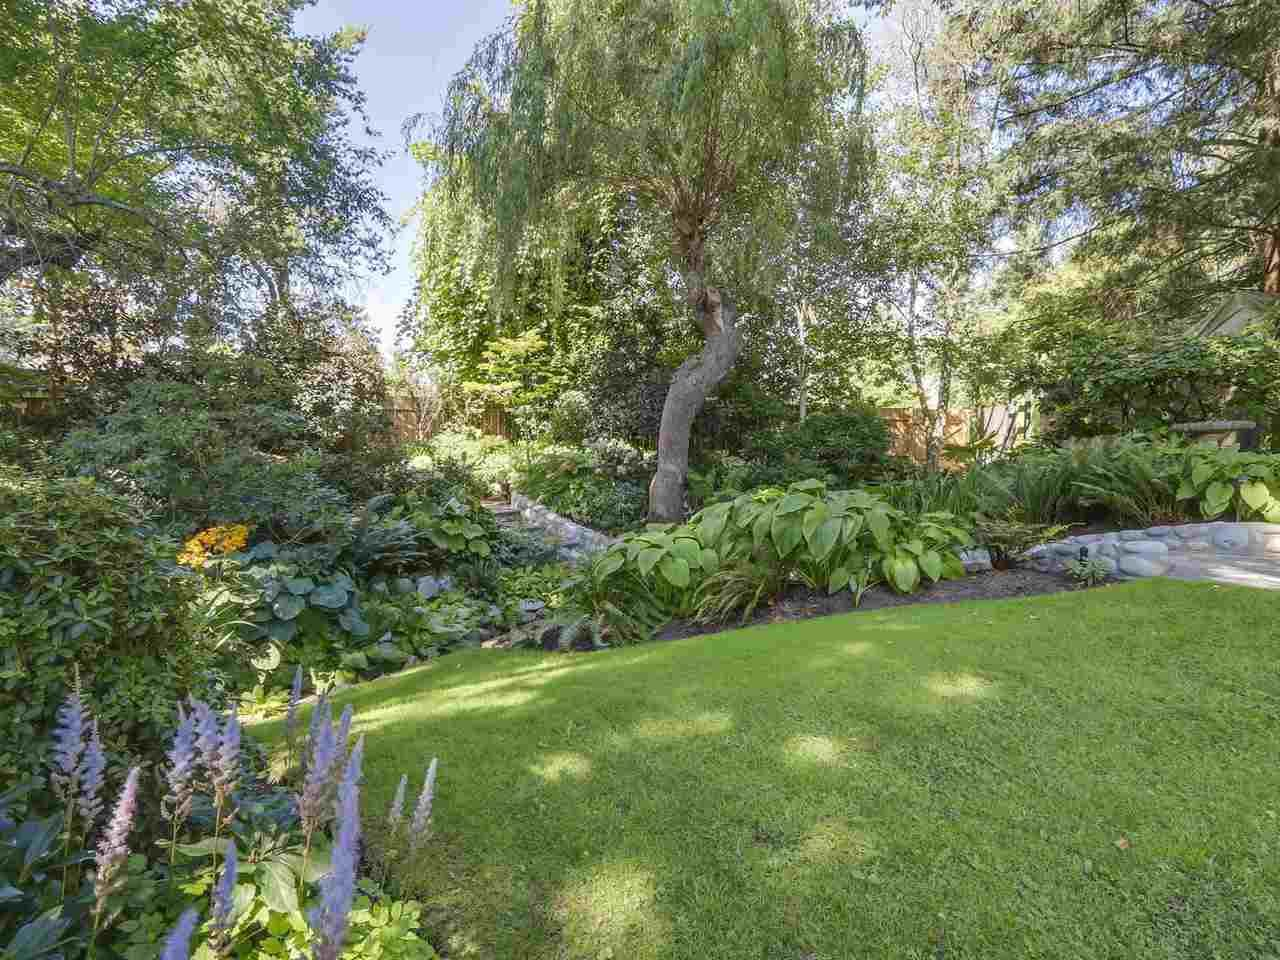 Photo 17: Photos: 587 HARRISON Avenue in Coquitlam: Coquitlam West House for sale : MLS®# R2097877